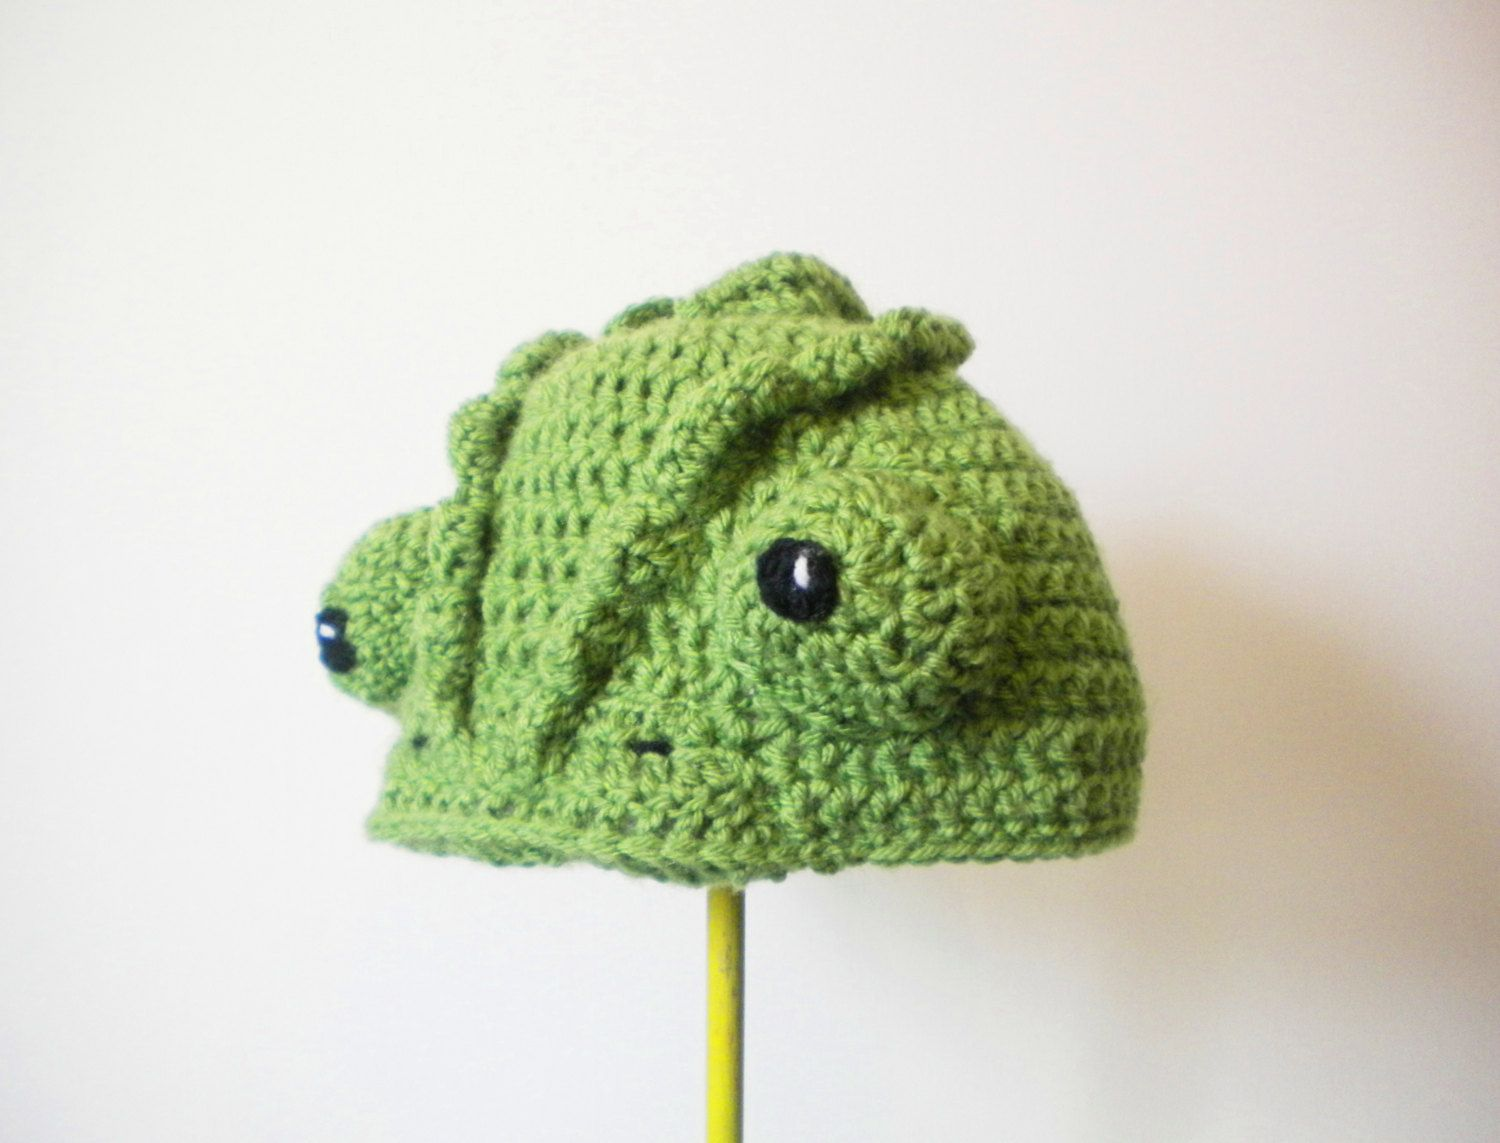 Crochet baby lizard hat google search knitting crochet crochet baby lizard hat google search bankloansurffo Images